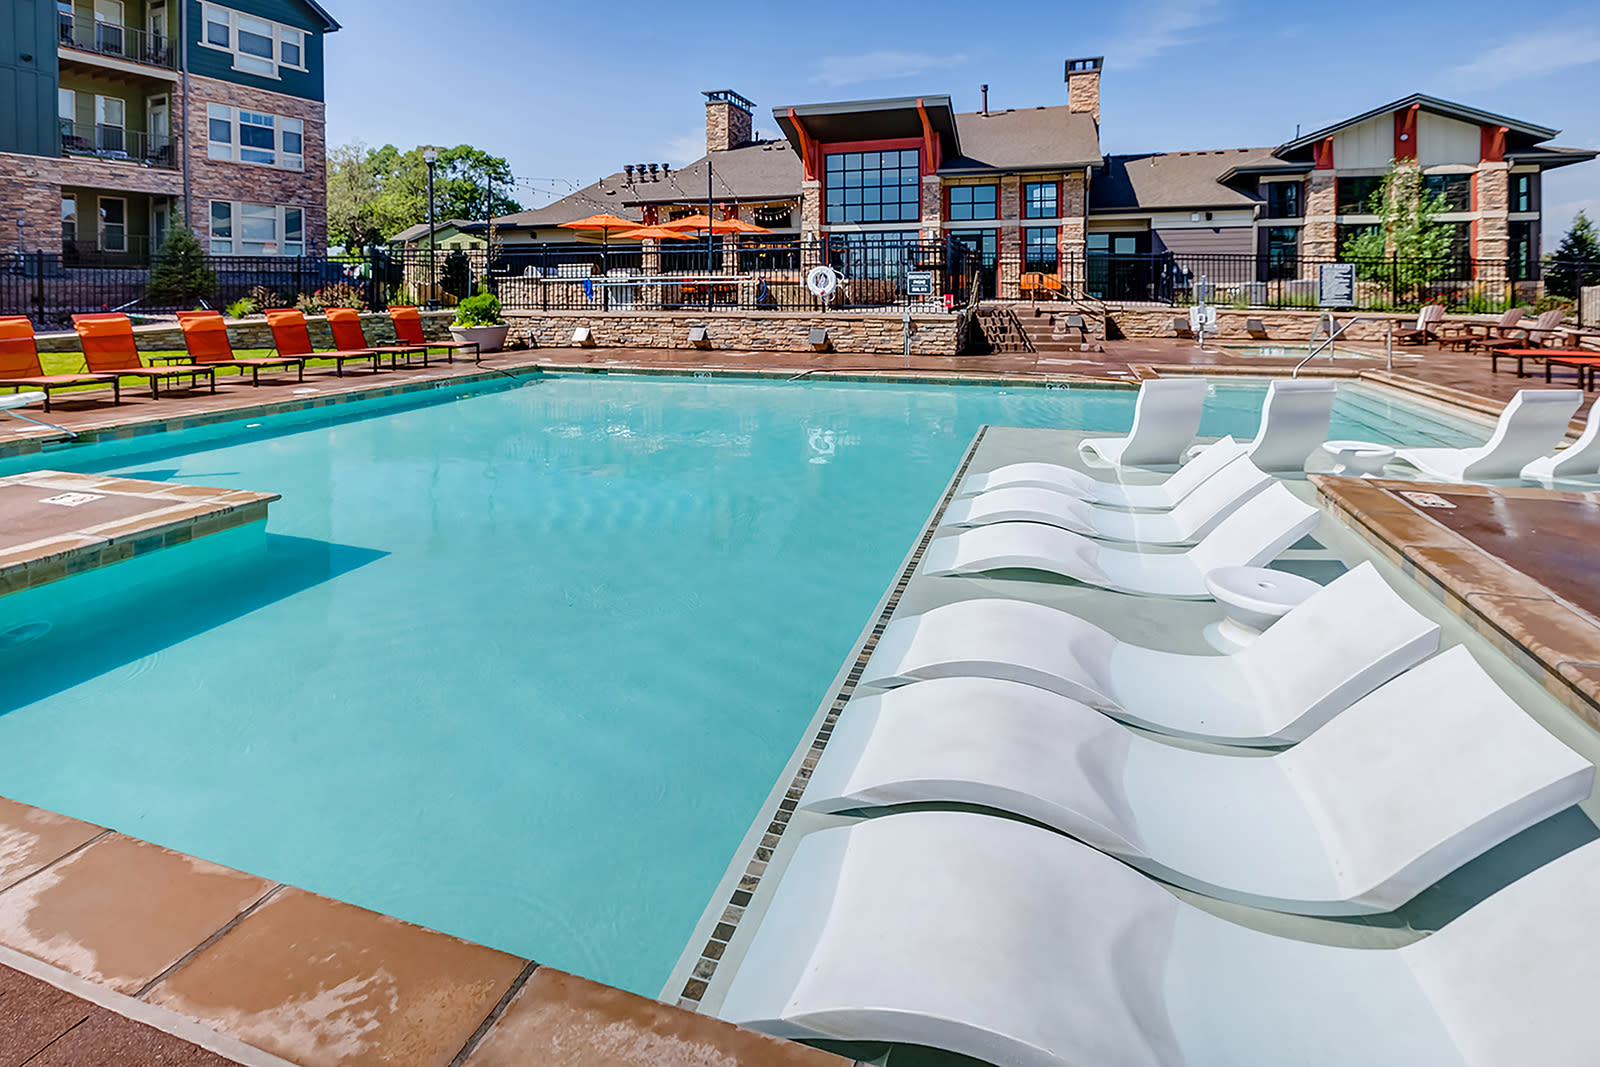 In water lounge chairs at Windsor at Pinehurst, Lakewood, CO